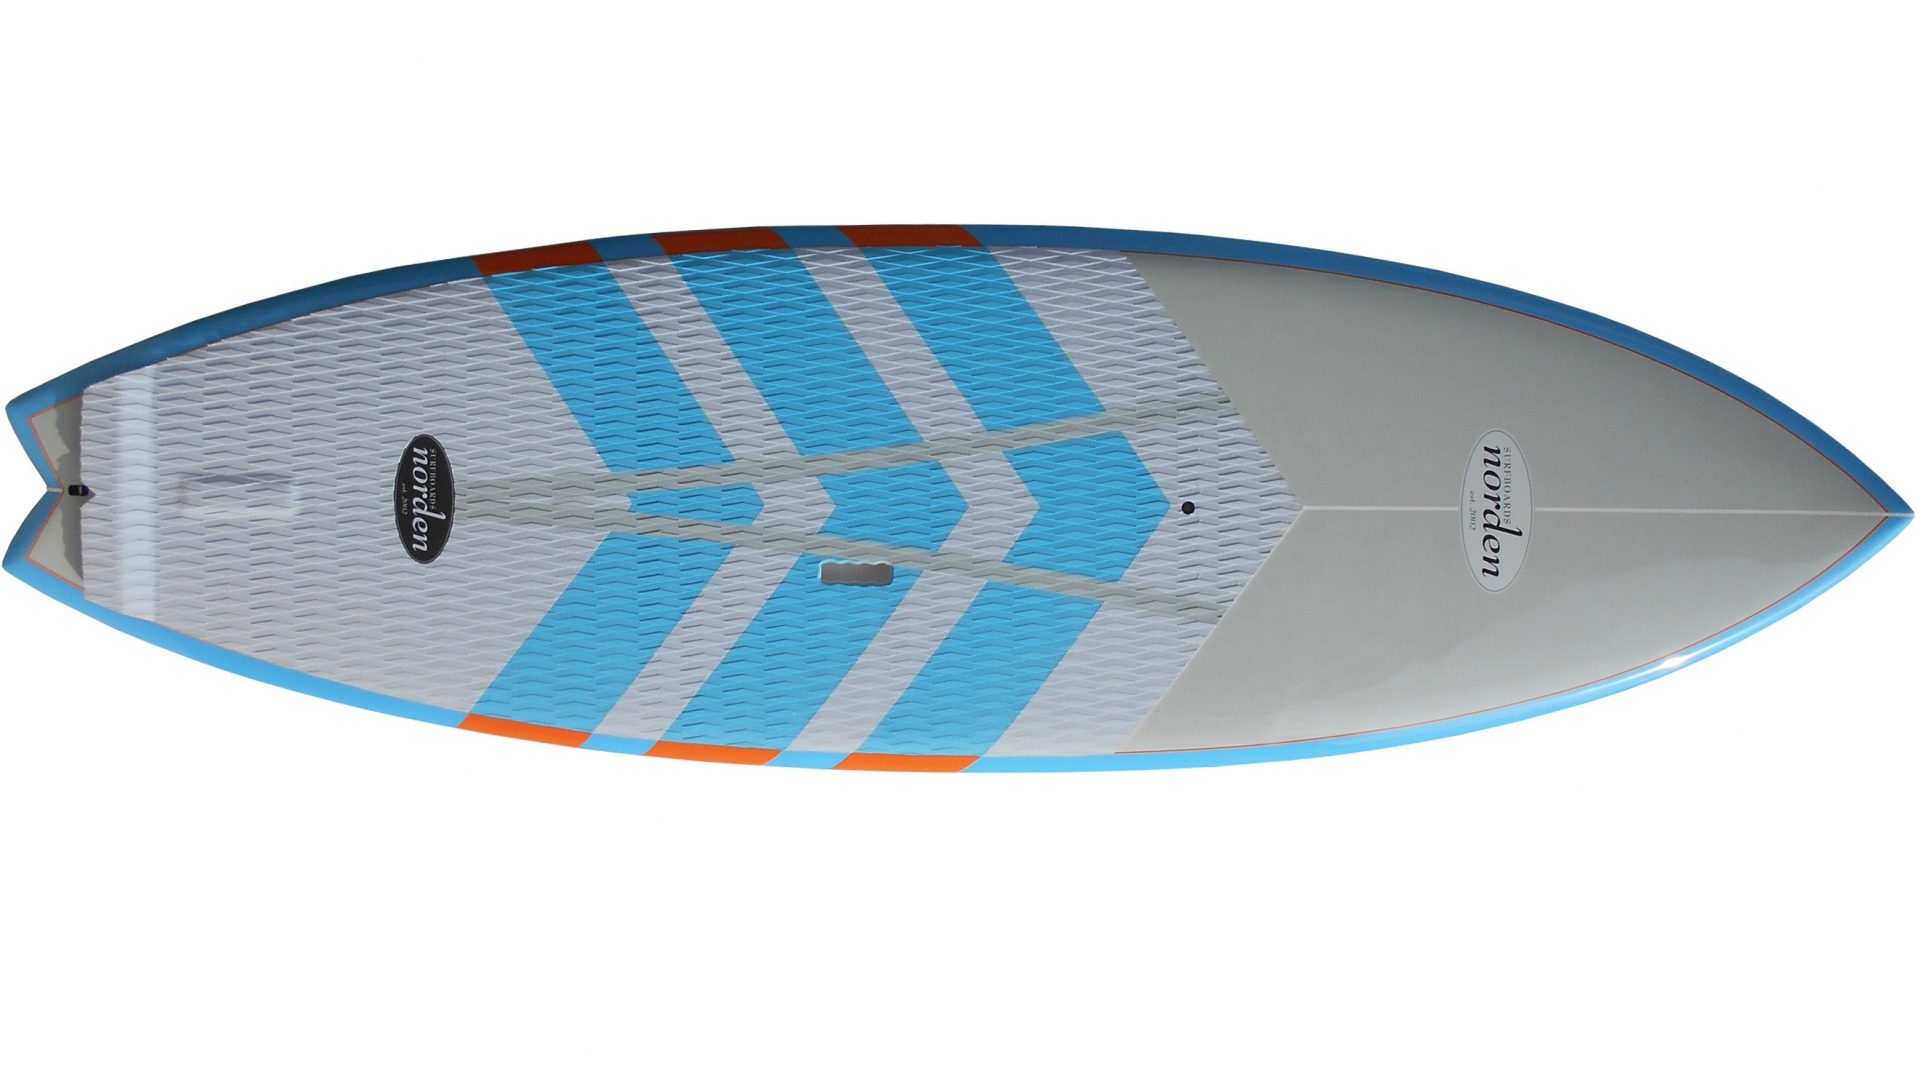 norden-surfboards-SUPerFish-ws--orange-top POST